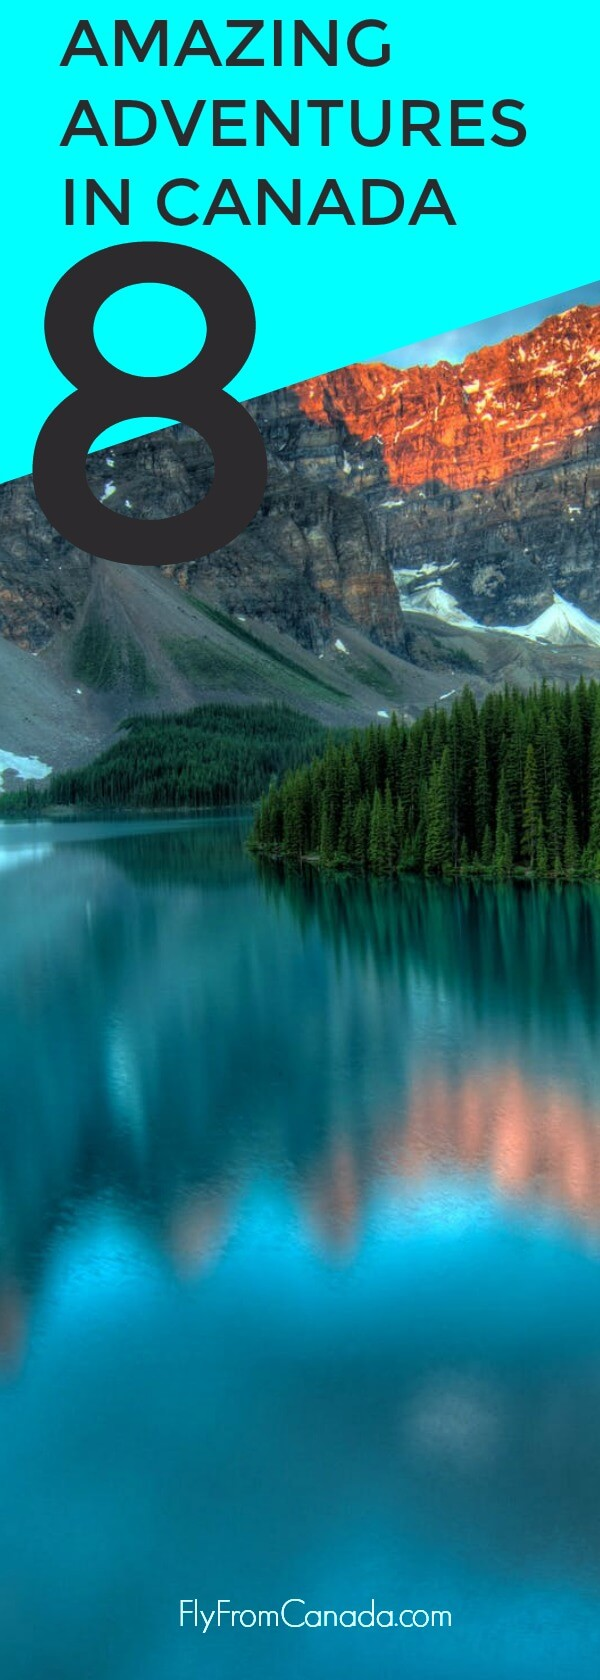 8 Amazing Adventures to Have in Canada